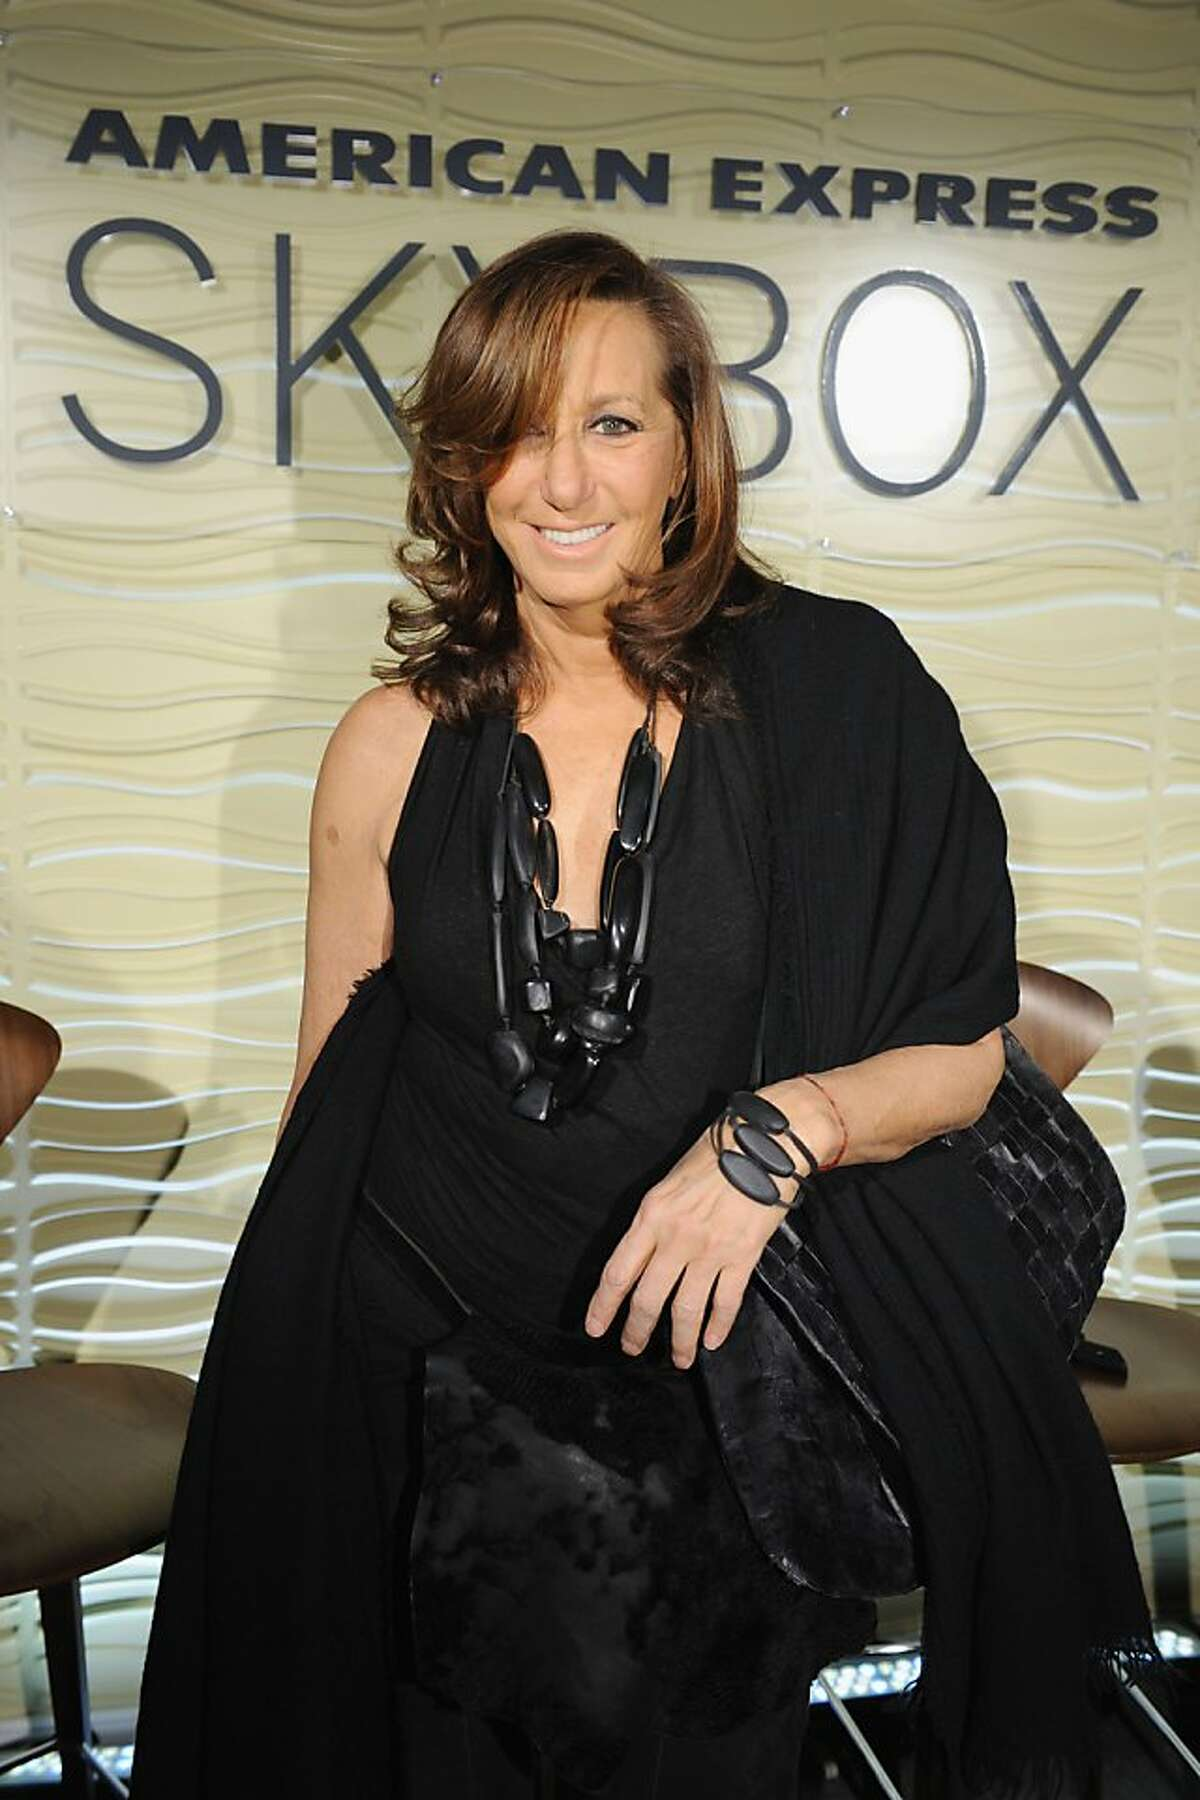 NEW YORK, NY - FEBRUARY 13: Donna Karan visits the American Express Skybox to celebrate the launch of American Express Sync with Twitter during Mercedes Benz Fall 2013 Fashion Week at Lincoln Center on February 13, 2013 in New York City. (Photo by Bryan Bedder/Getty Images for American Express)